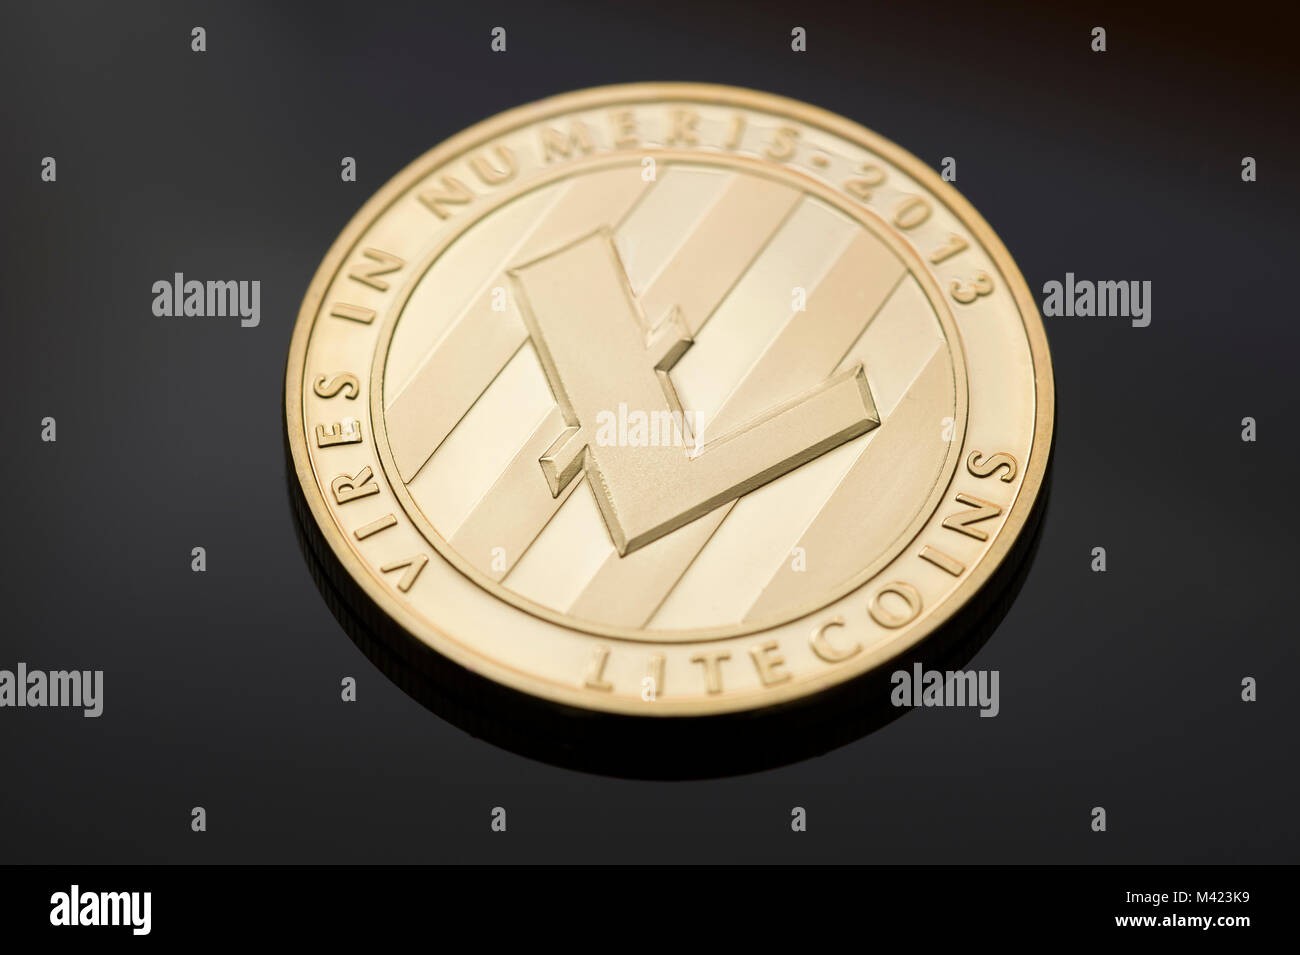 A single Litecoin on a black background. One of many digital or cryptocurrencies that use blockchain technology - Stock Image